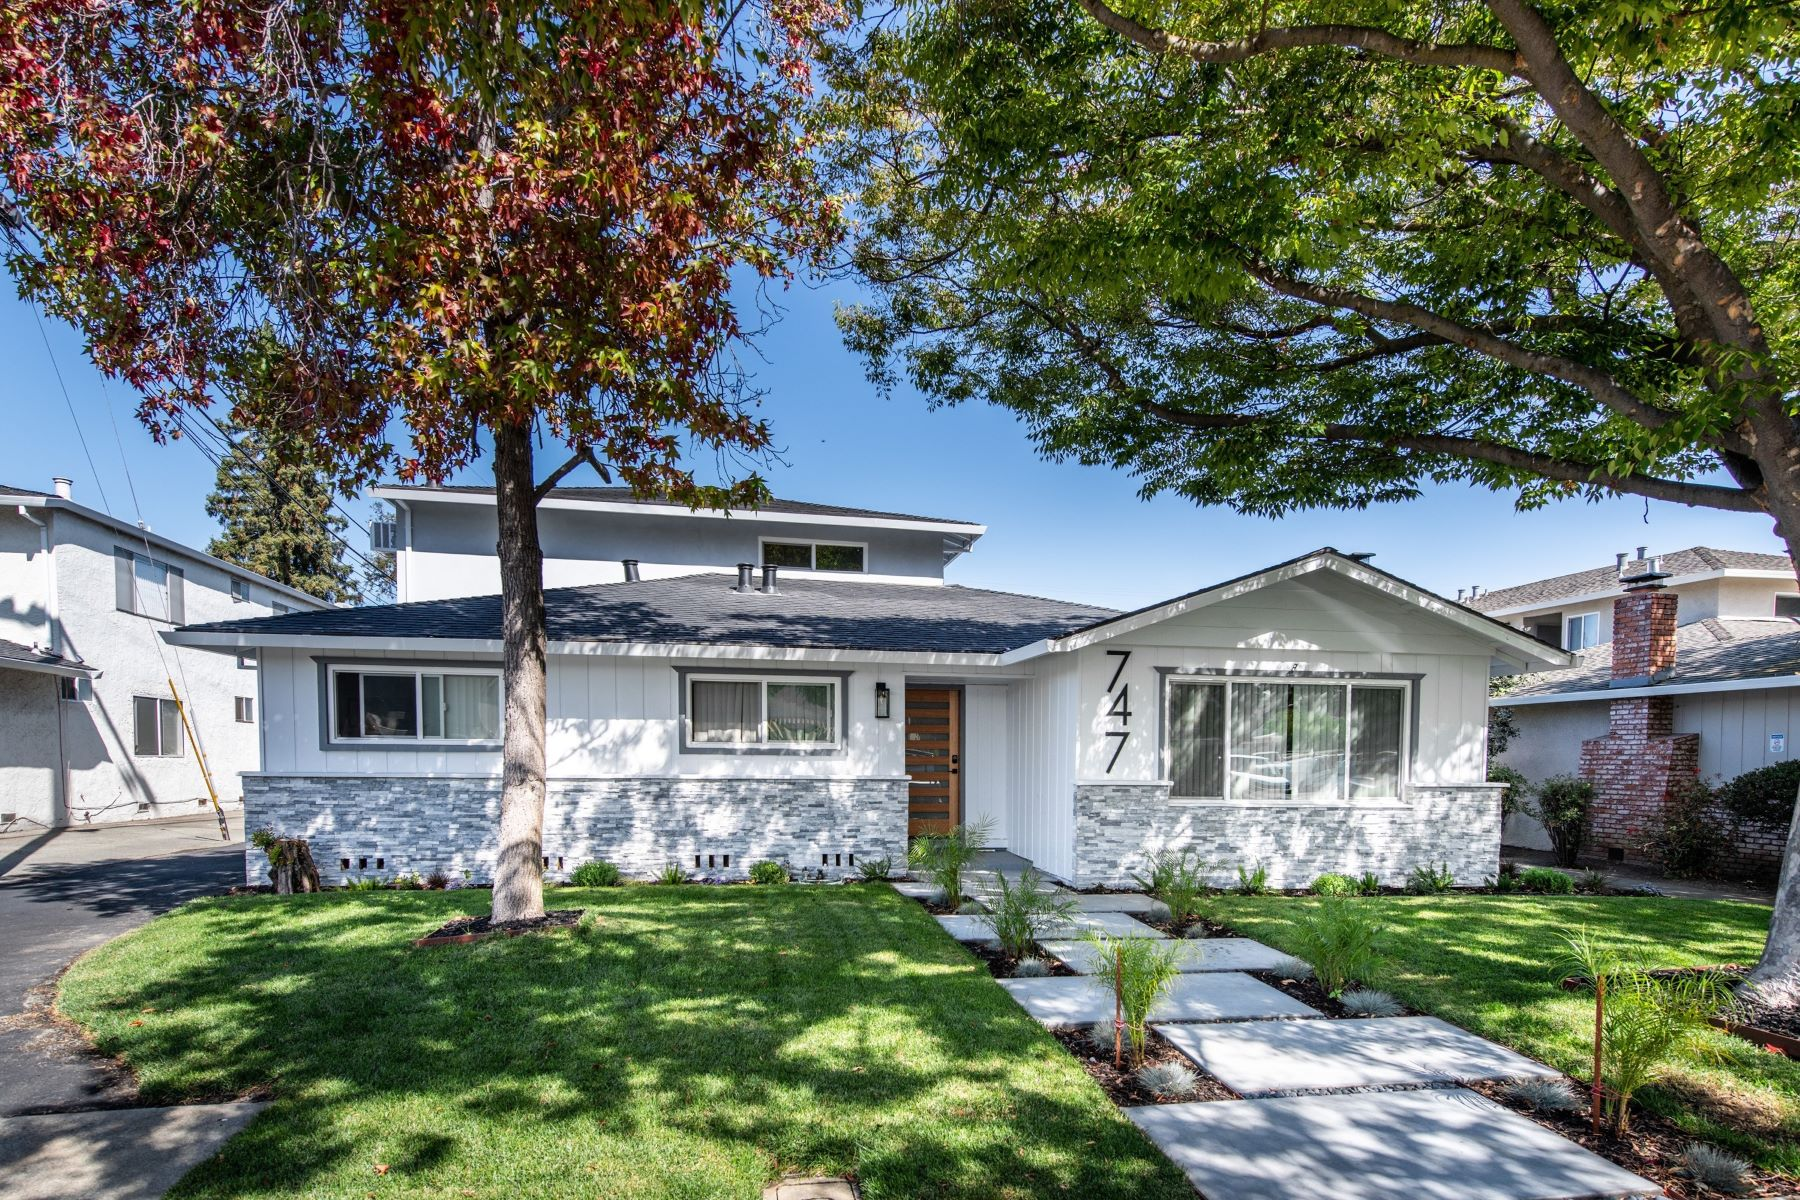 Multi-Family Homes for Active at Updated Fourplex in Prime Location 747 Calla Dr Sunnyvale, California 94086 United States